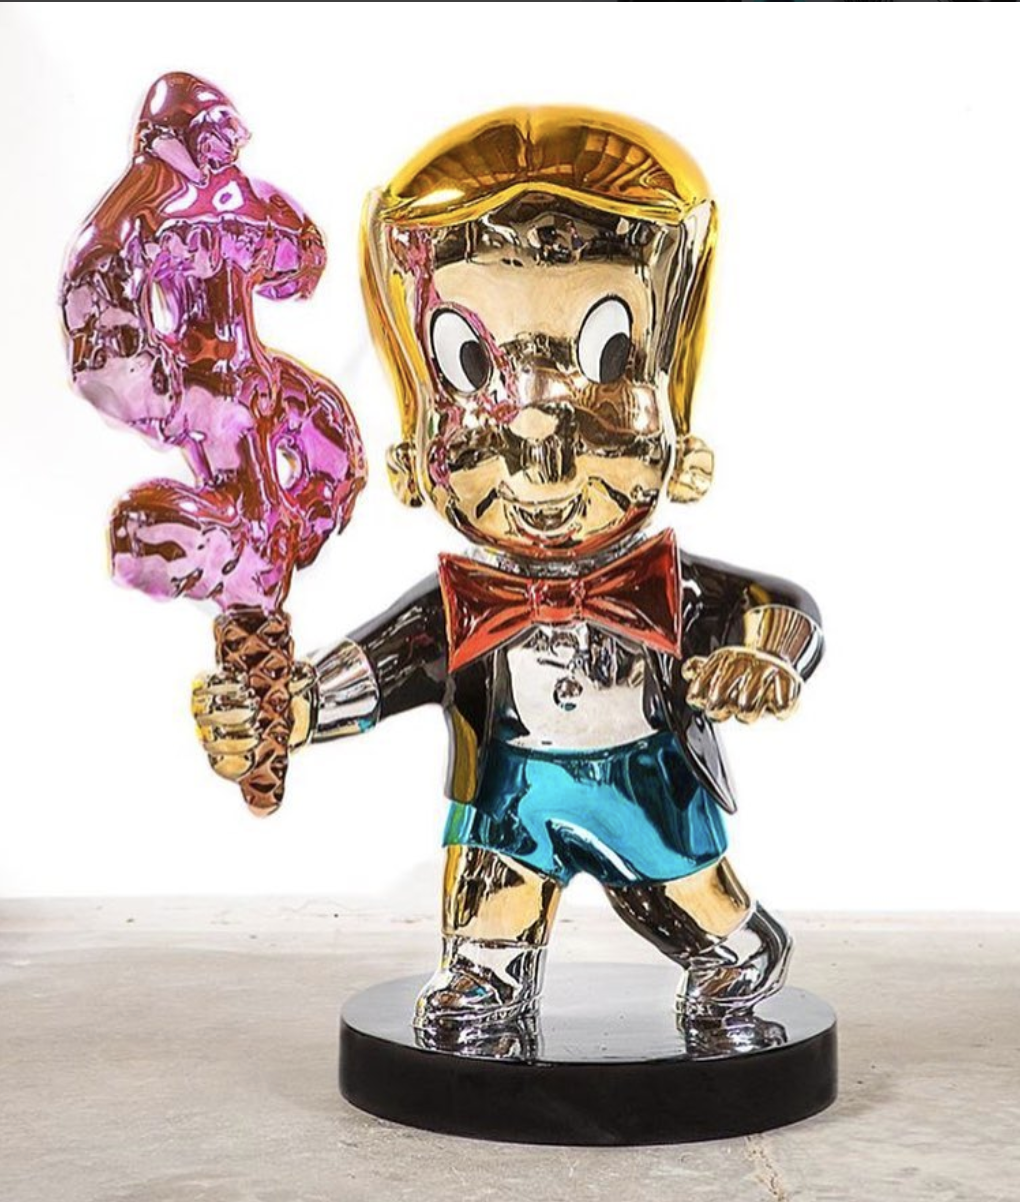 Richie Rich Money Cone by Alec Monopoly